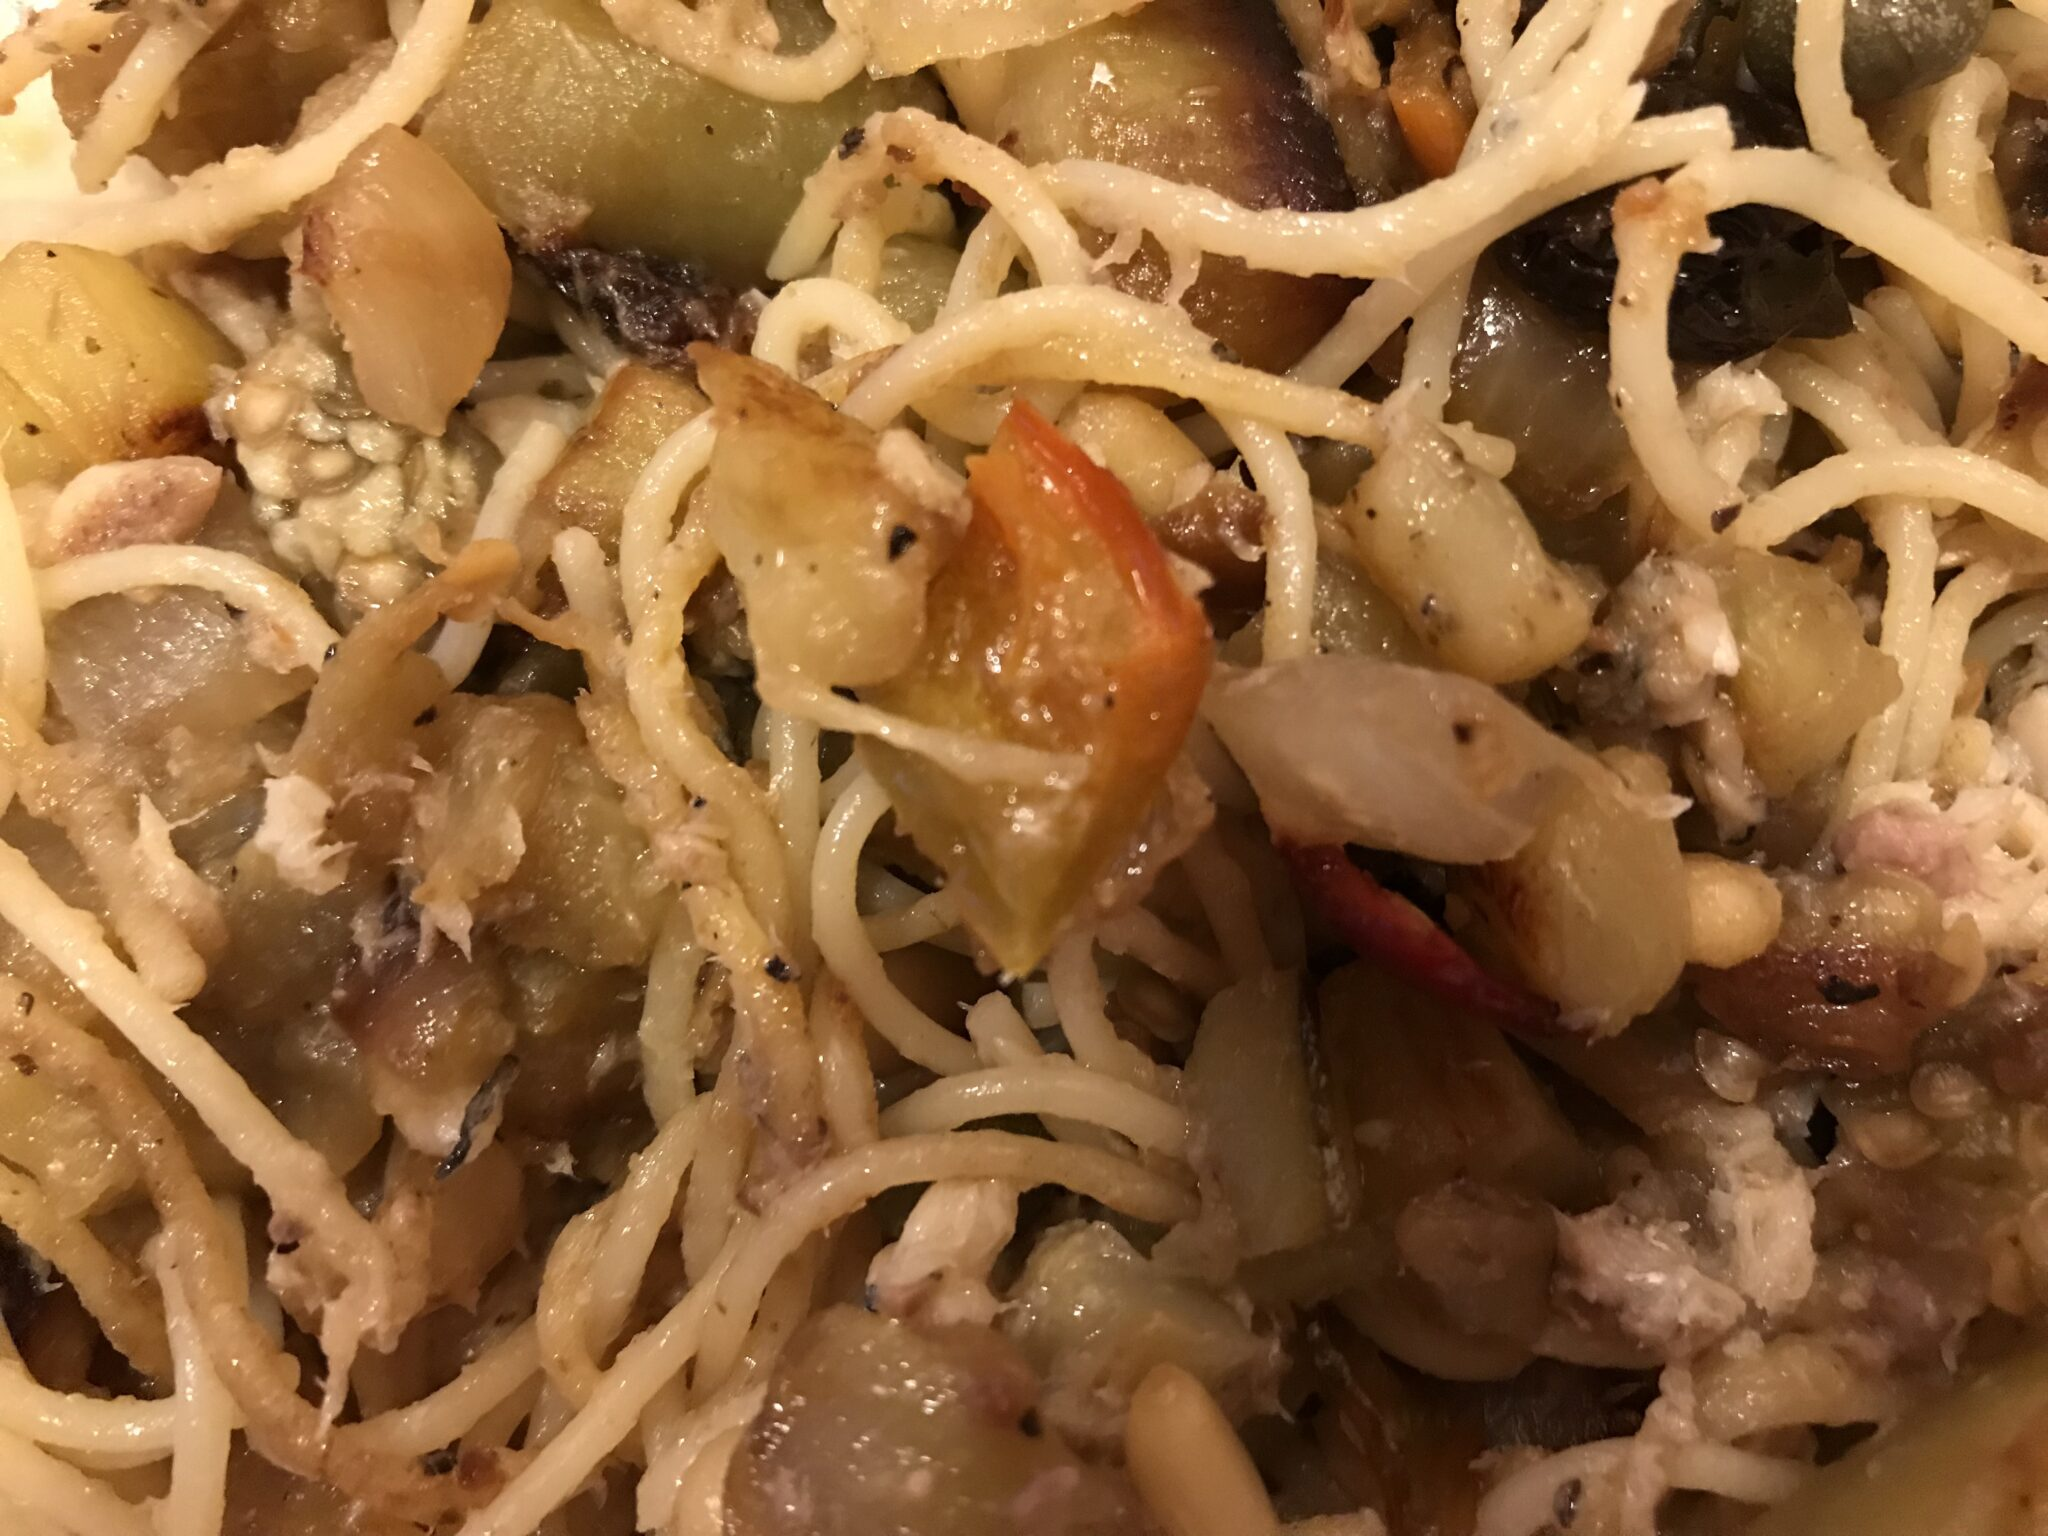 Sicilian Caponata Marries Pasta